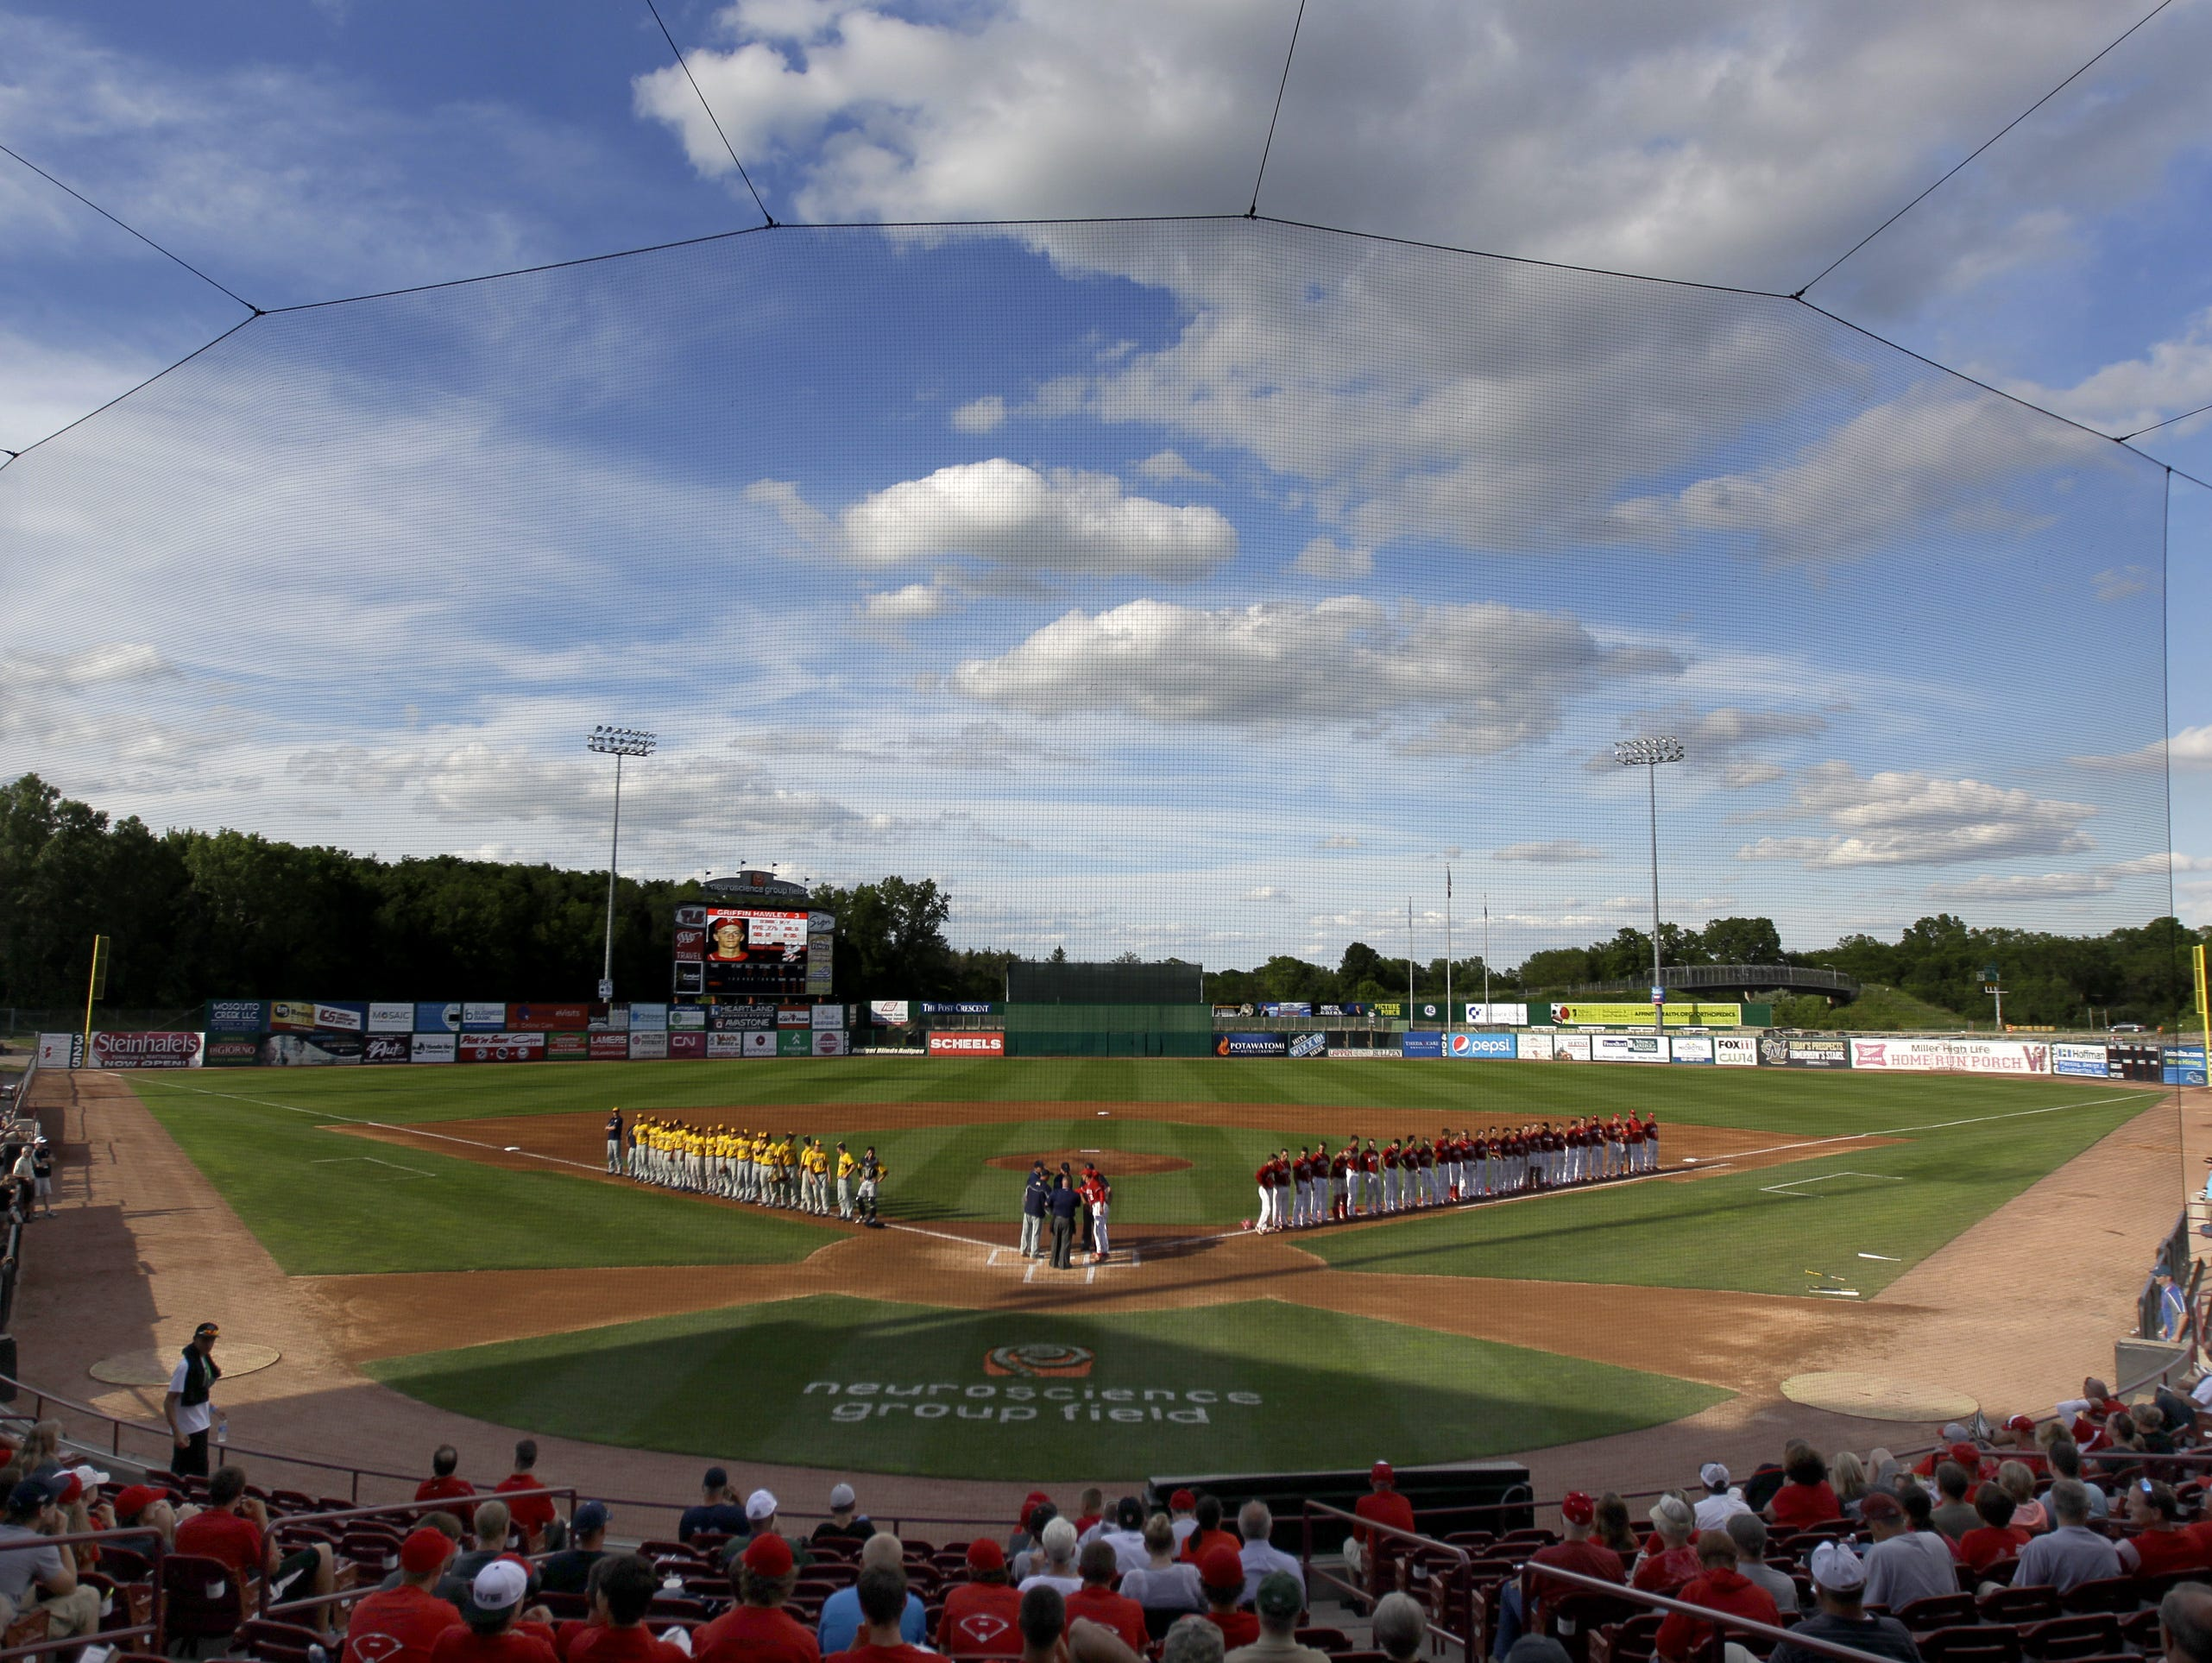 Neuroscience Group Field at Fox Cities Stadium in Grand Chute is the site of this year's WIAA state baseball tournament.